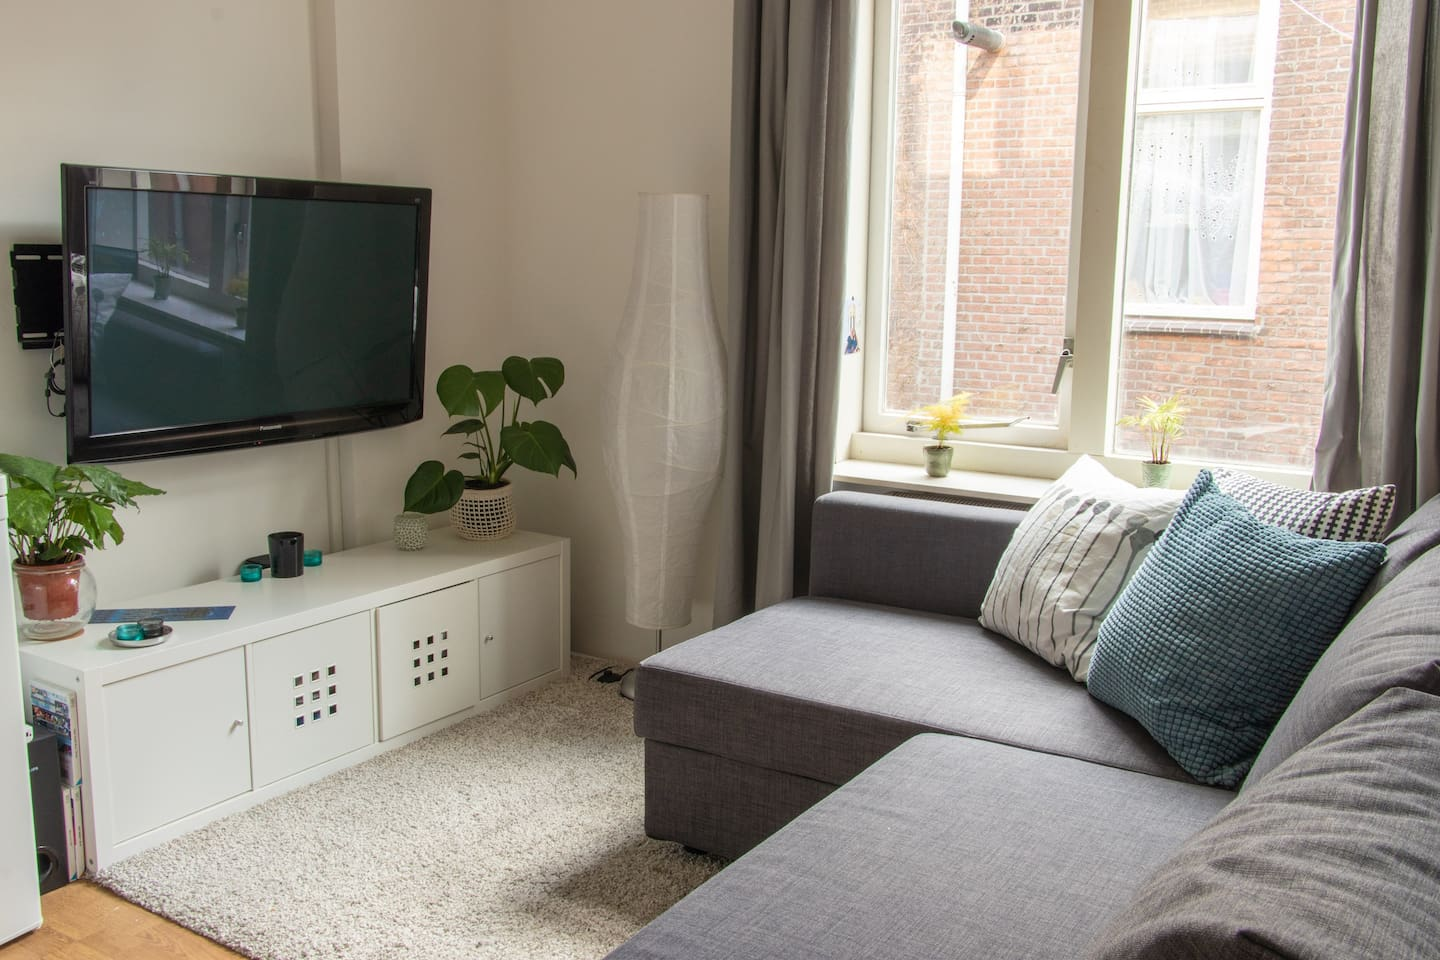 Sitting area with a tv with Chromecast and Wii console